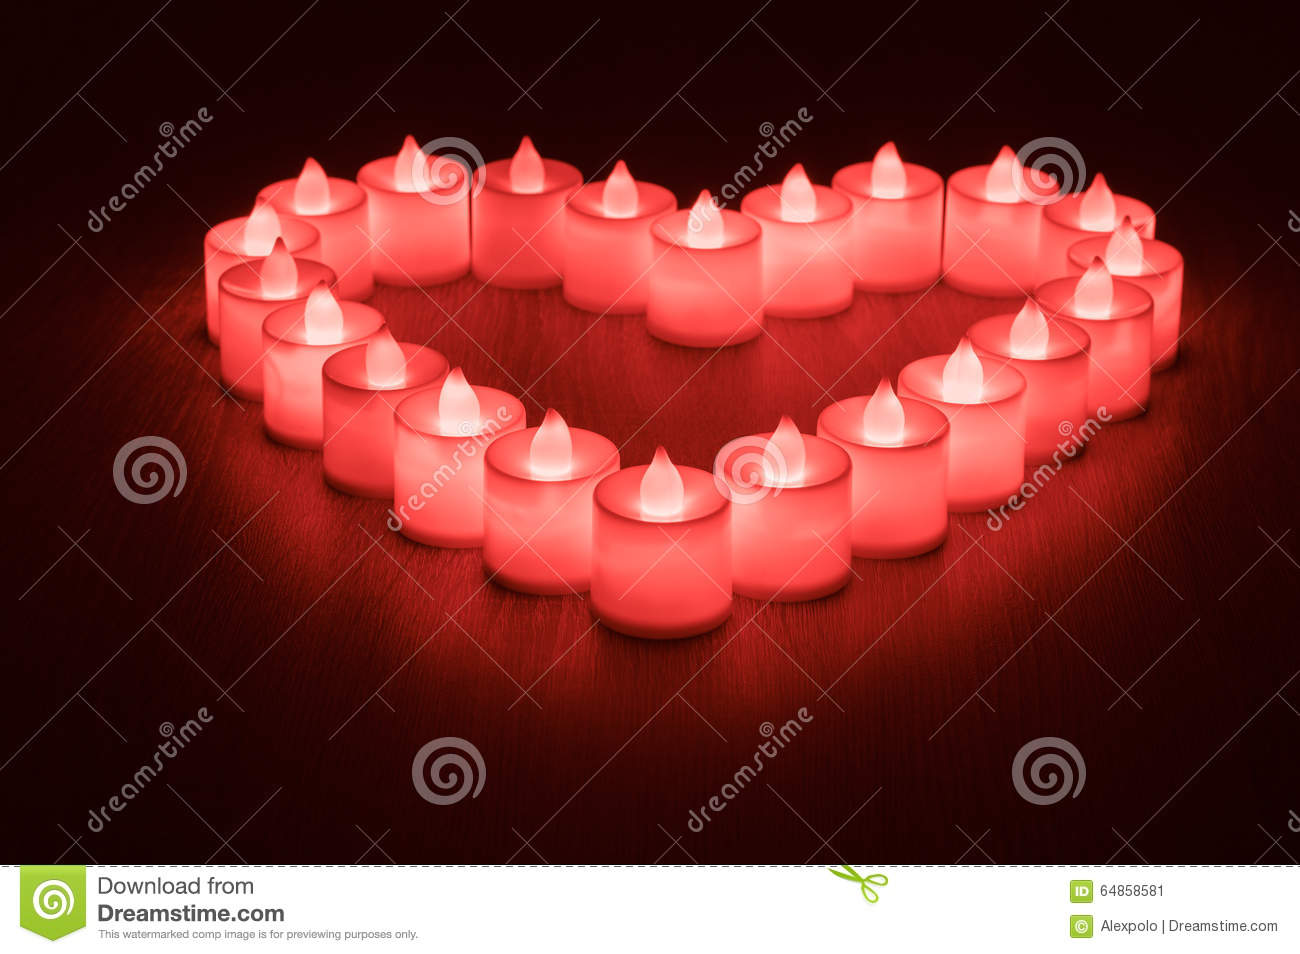 Love symbol made from many led candles